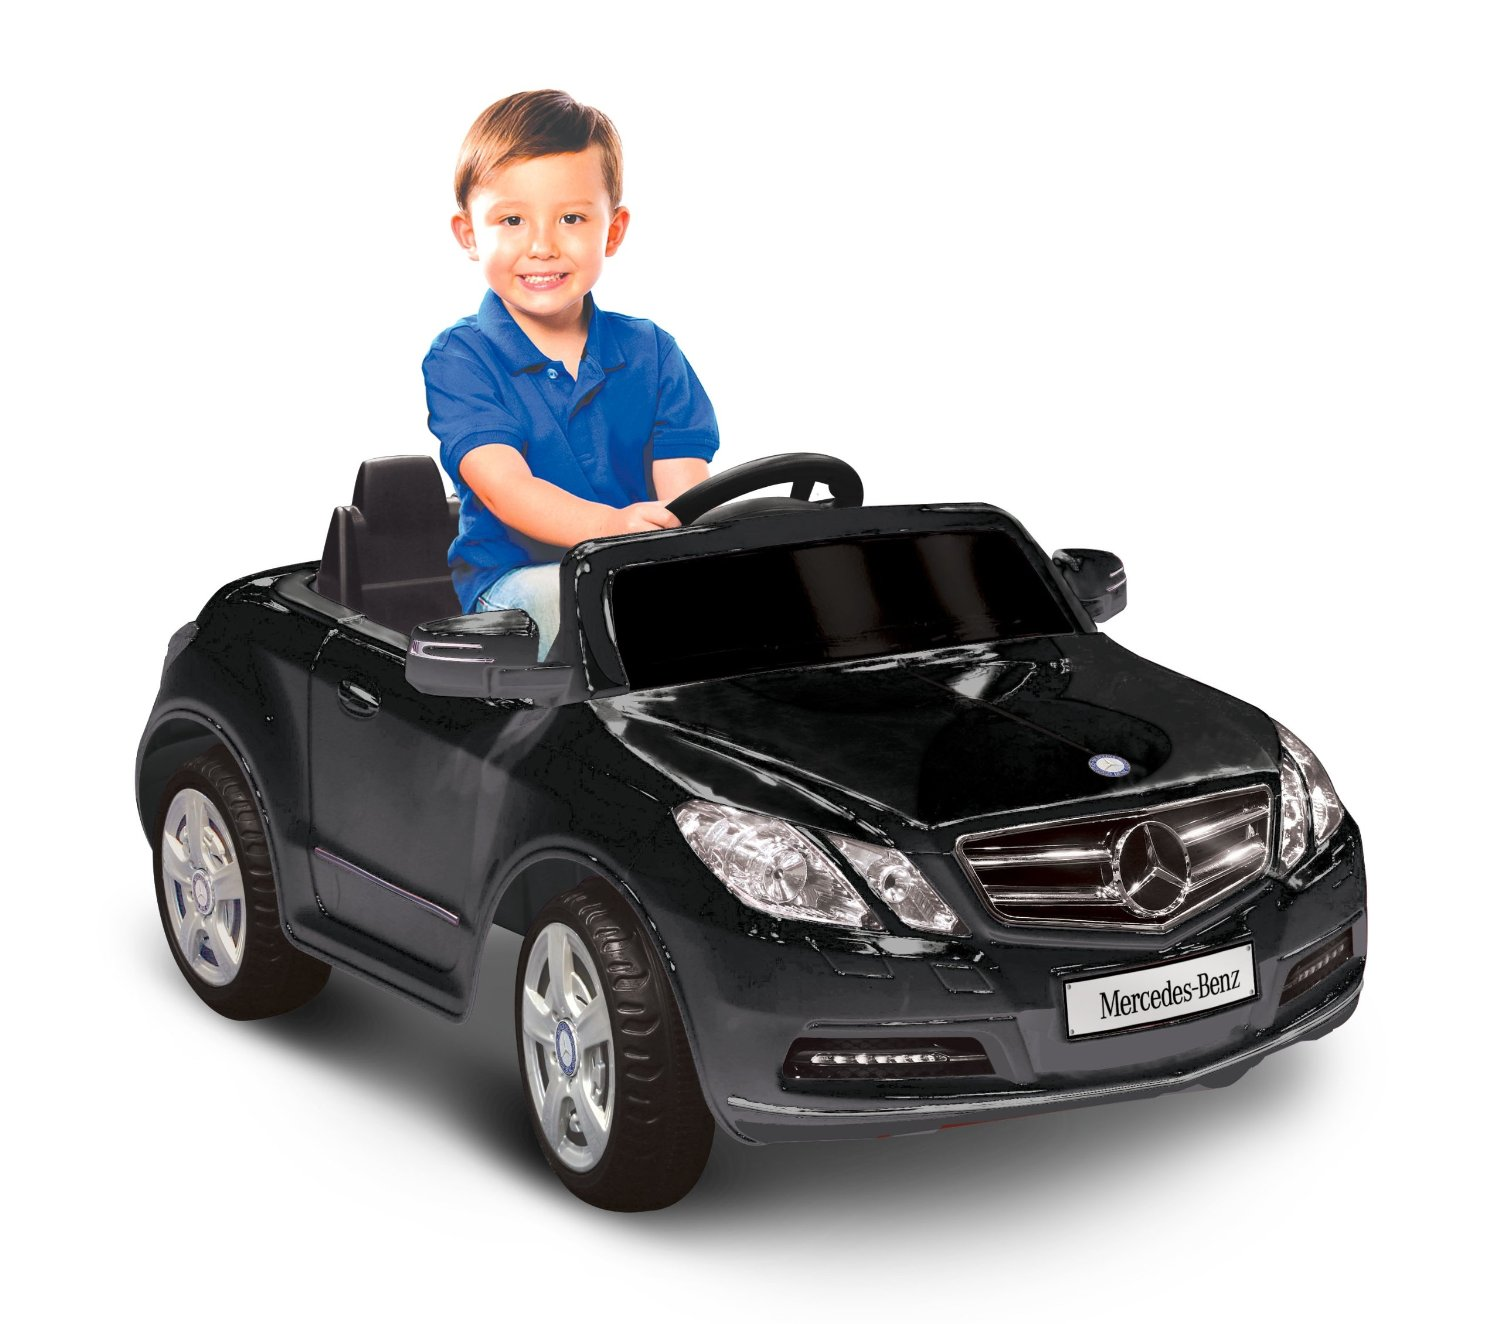 Kid motorz mercedes benz e550 1 seater for Mercedes benz e550 ride on